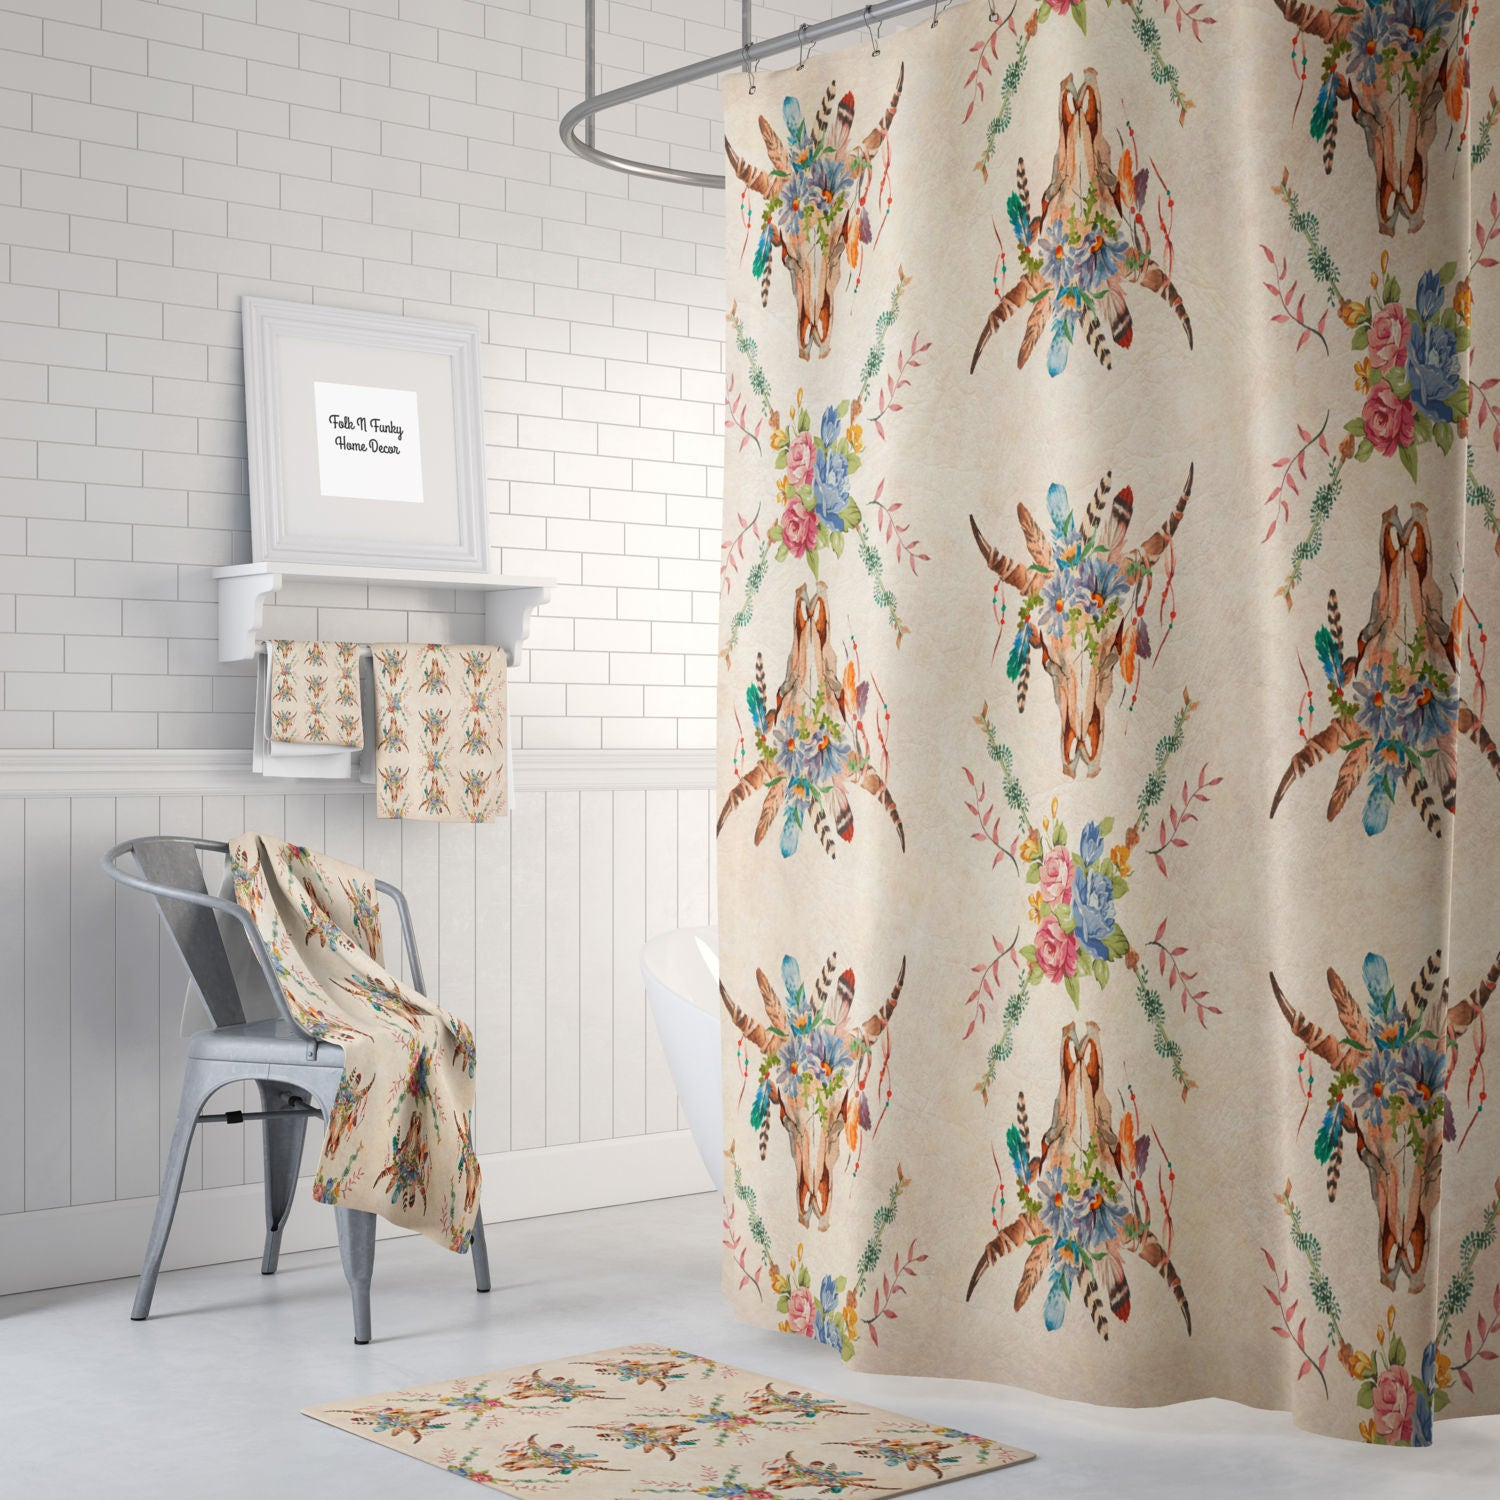 Boho Chic Shower Curtain Bath Towels Mat Southwest Bull Skull Grunge Floral Beige